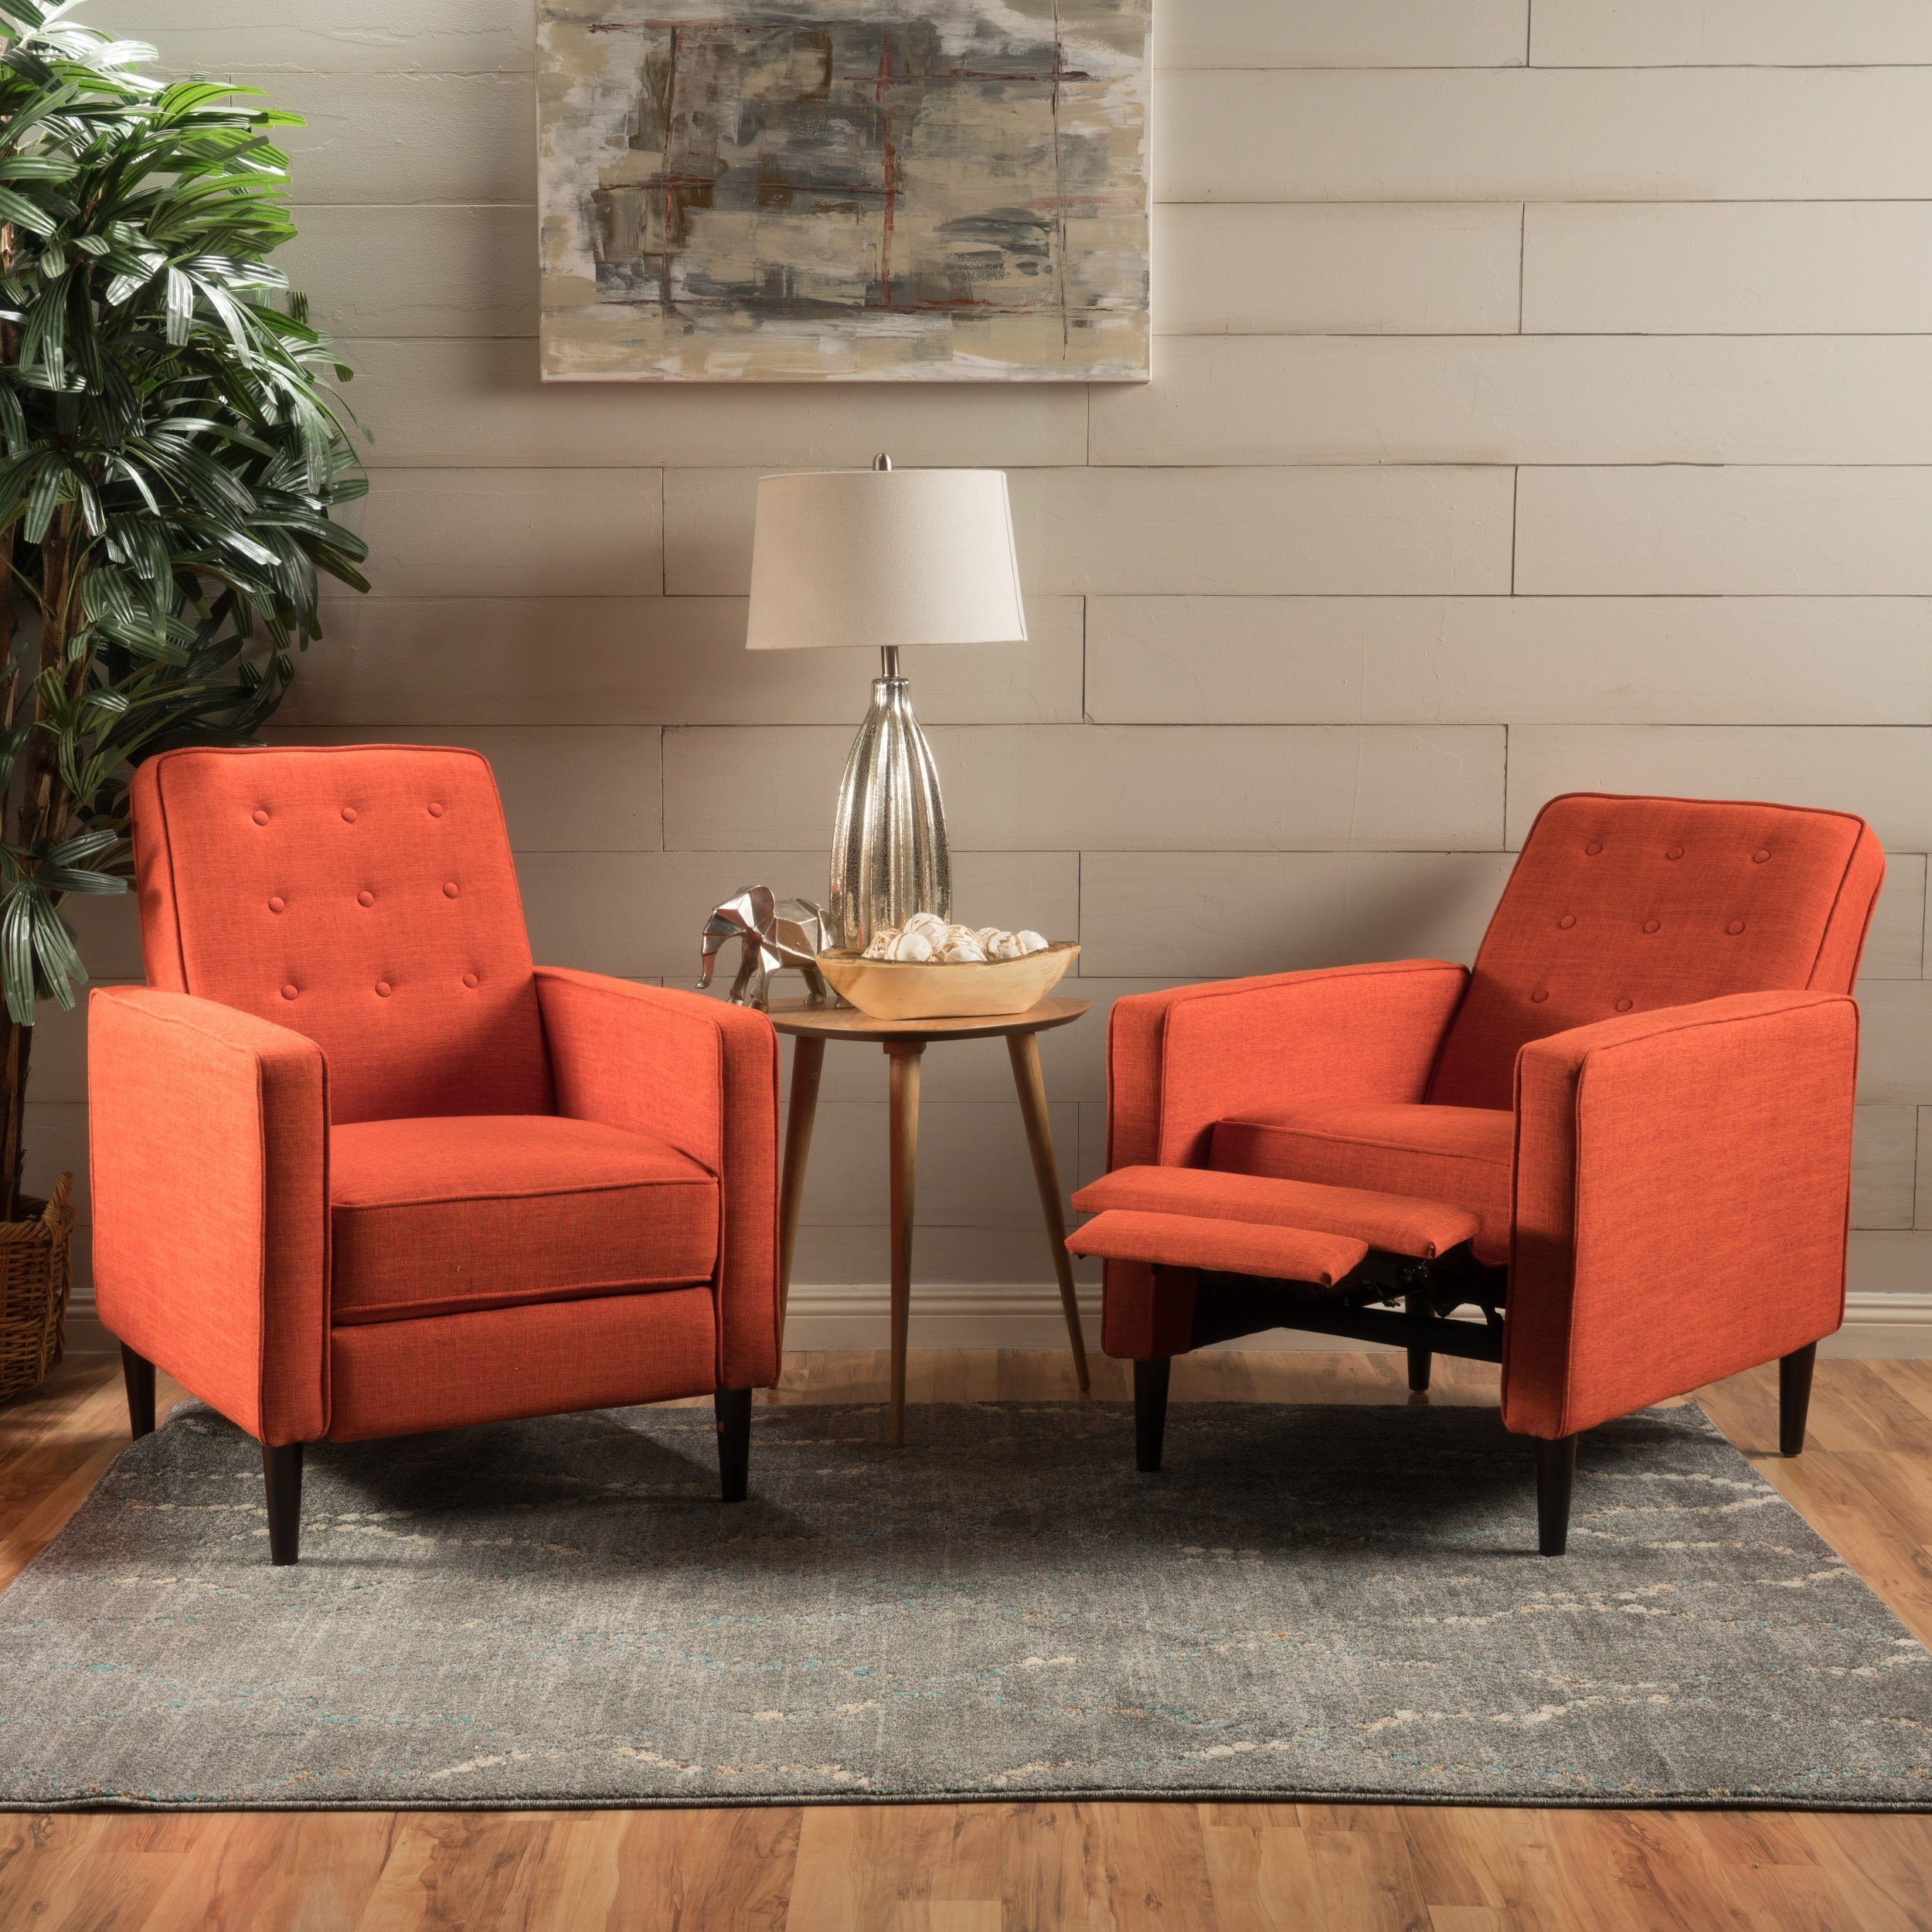 Christopher Knight Home Marston Mid Century Modern Fabric Recliner (Set of 2) (Orange), Muted by Christopher Knight Home